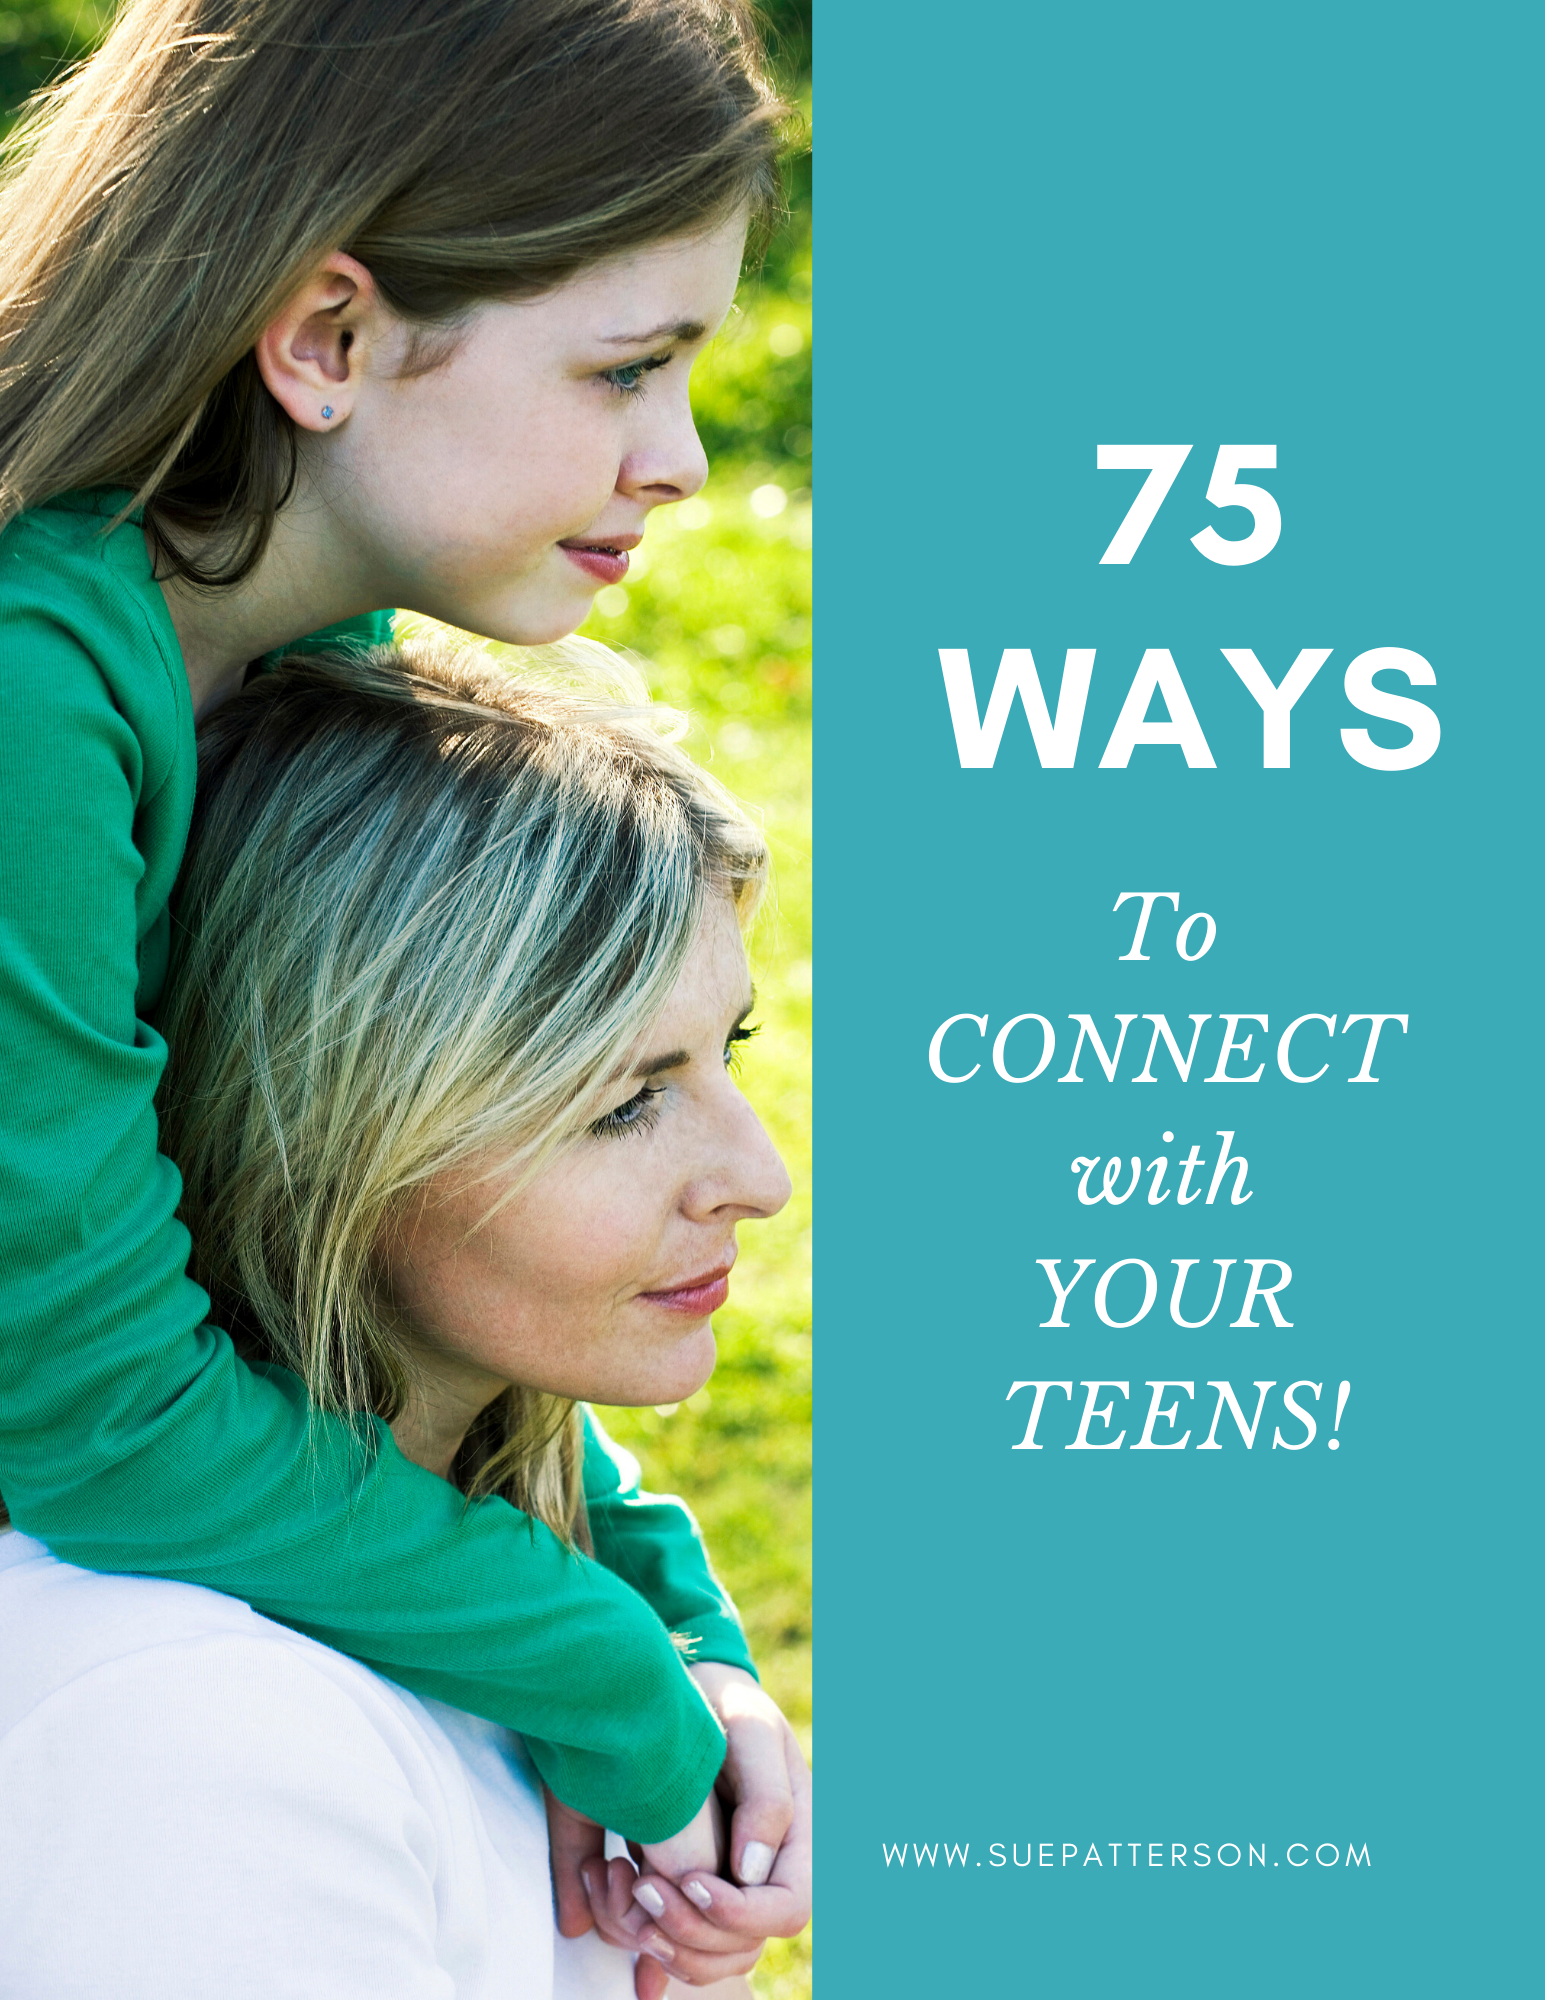 75 Ways to Connect with your teens